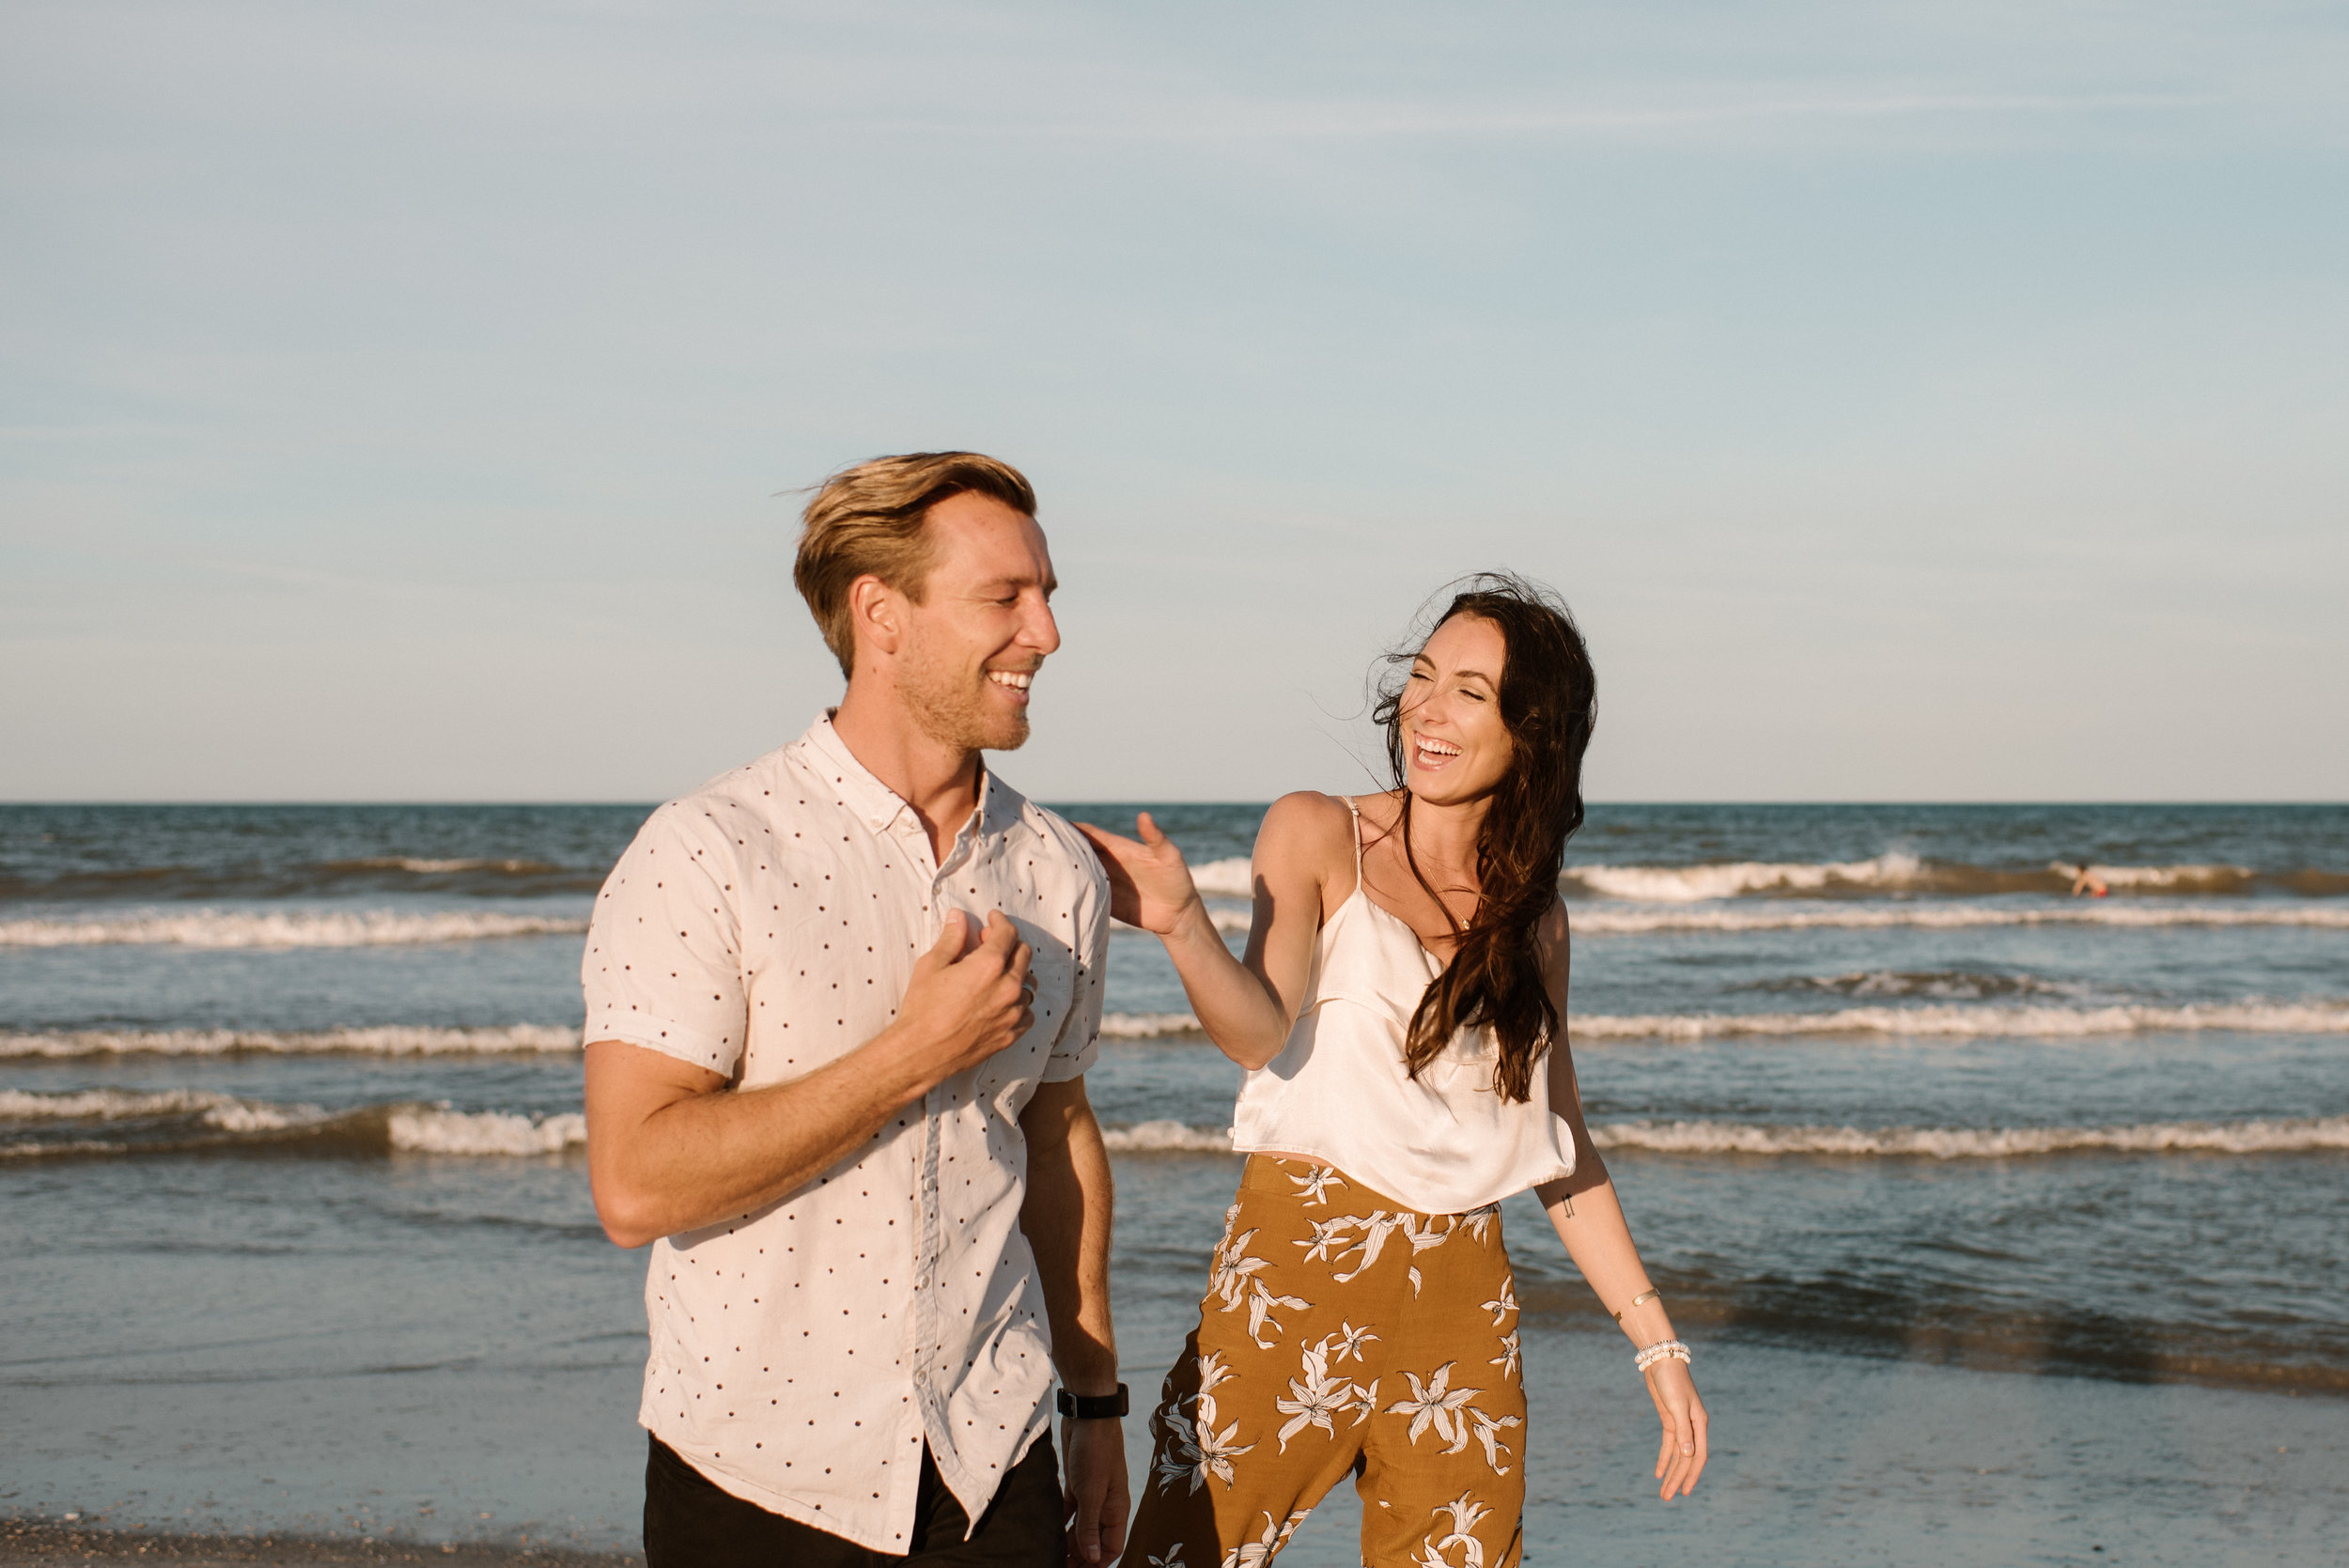 atlantic-beach-engagement-photos-heather-and-cody-62.jpg